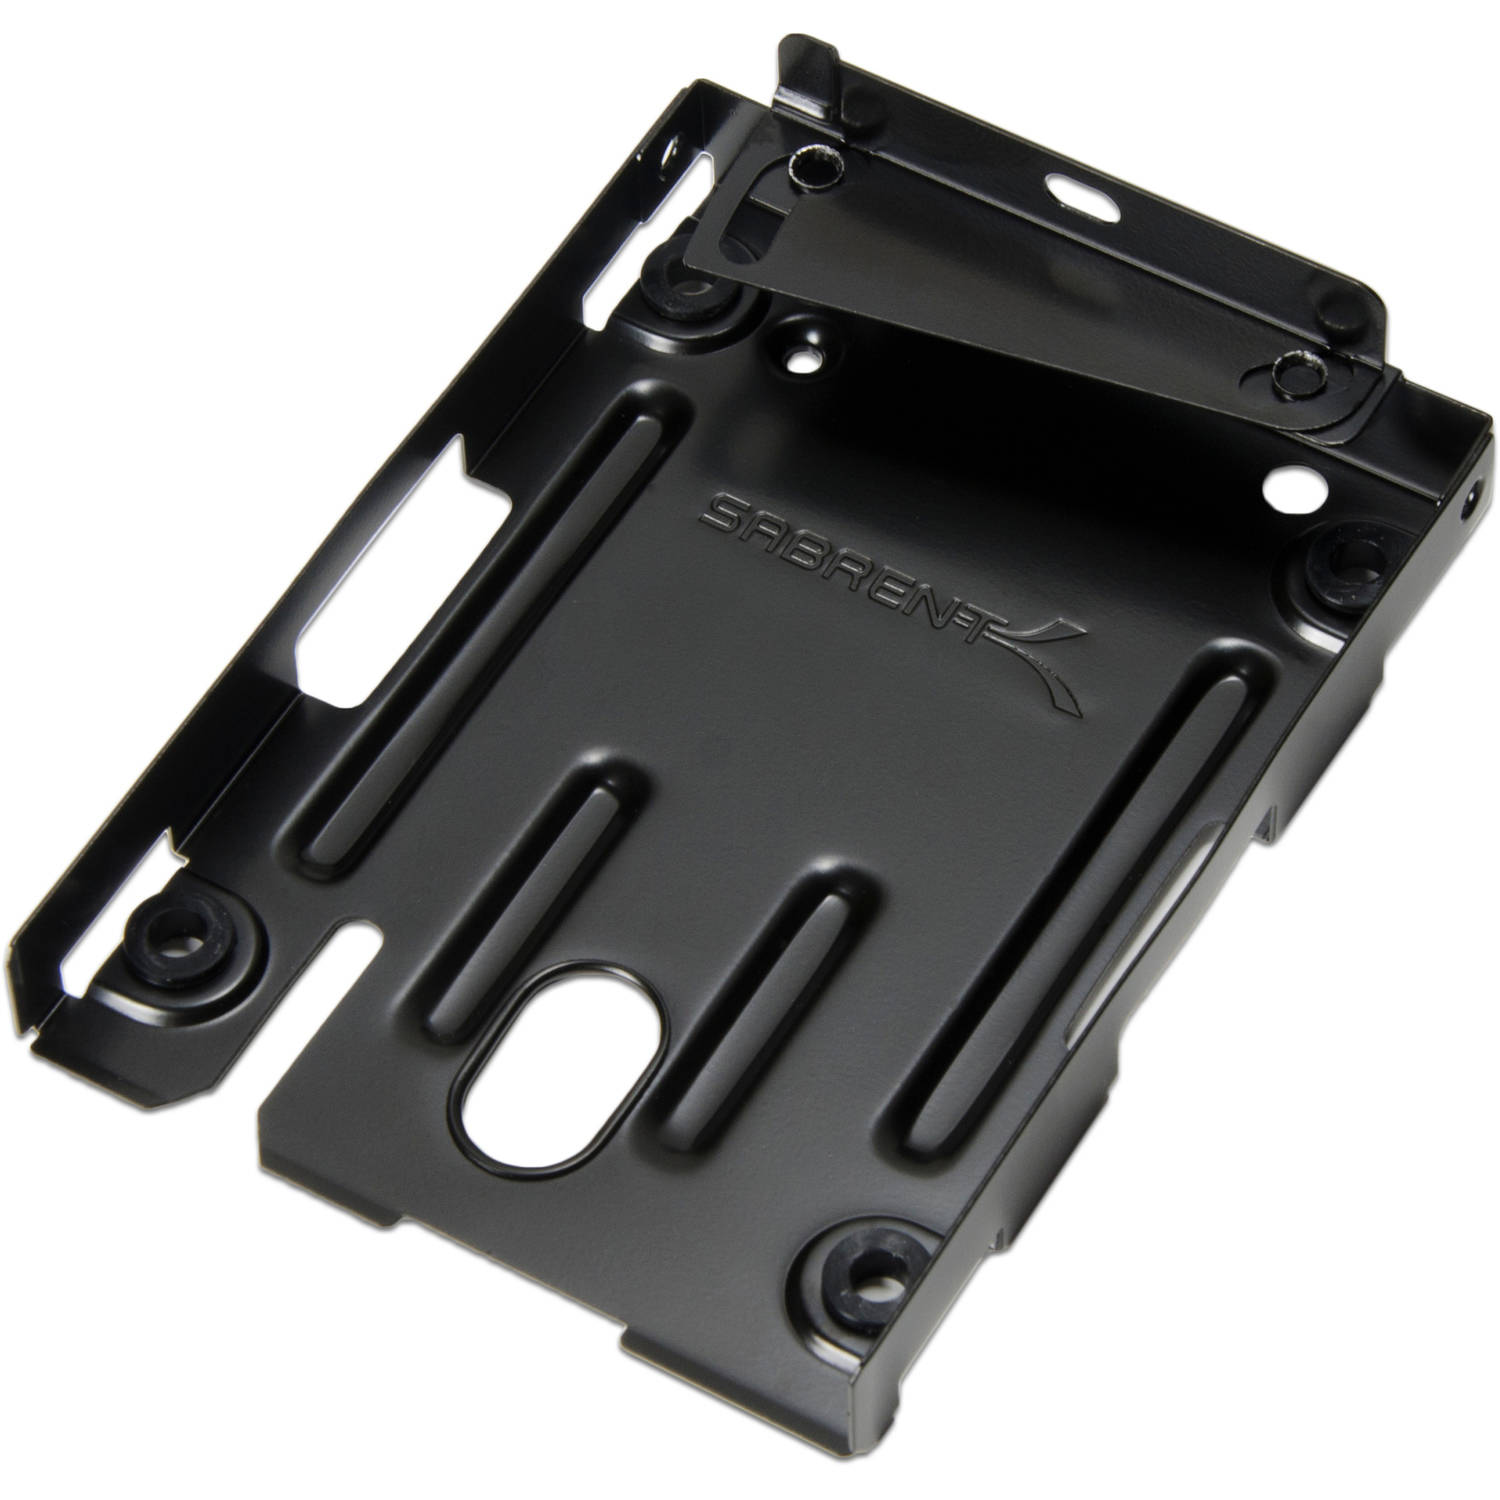 "Sabrent PS3 Super Slim CECH-400x Series 2.5"" Hard Drive Mounting Kit Bracket"